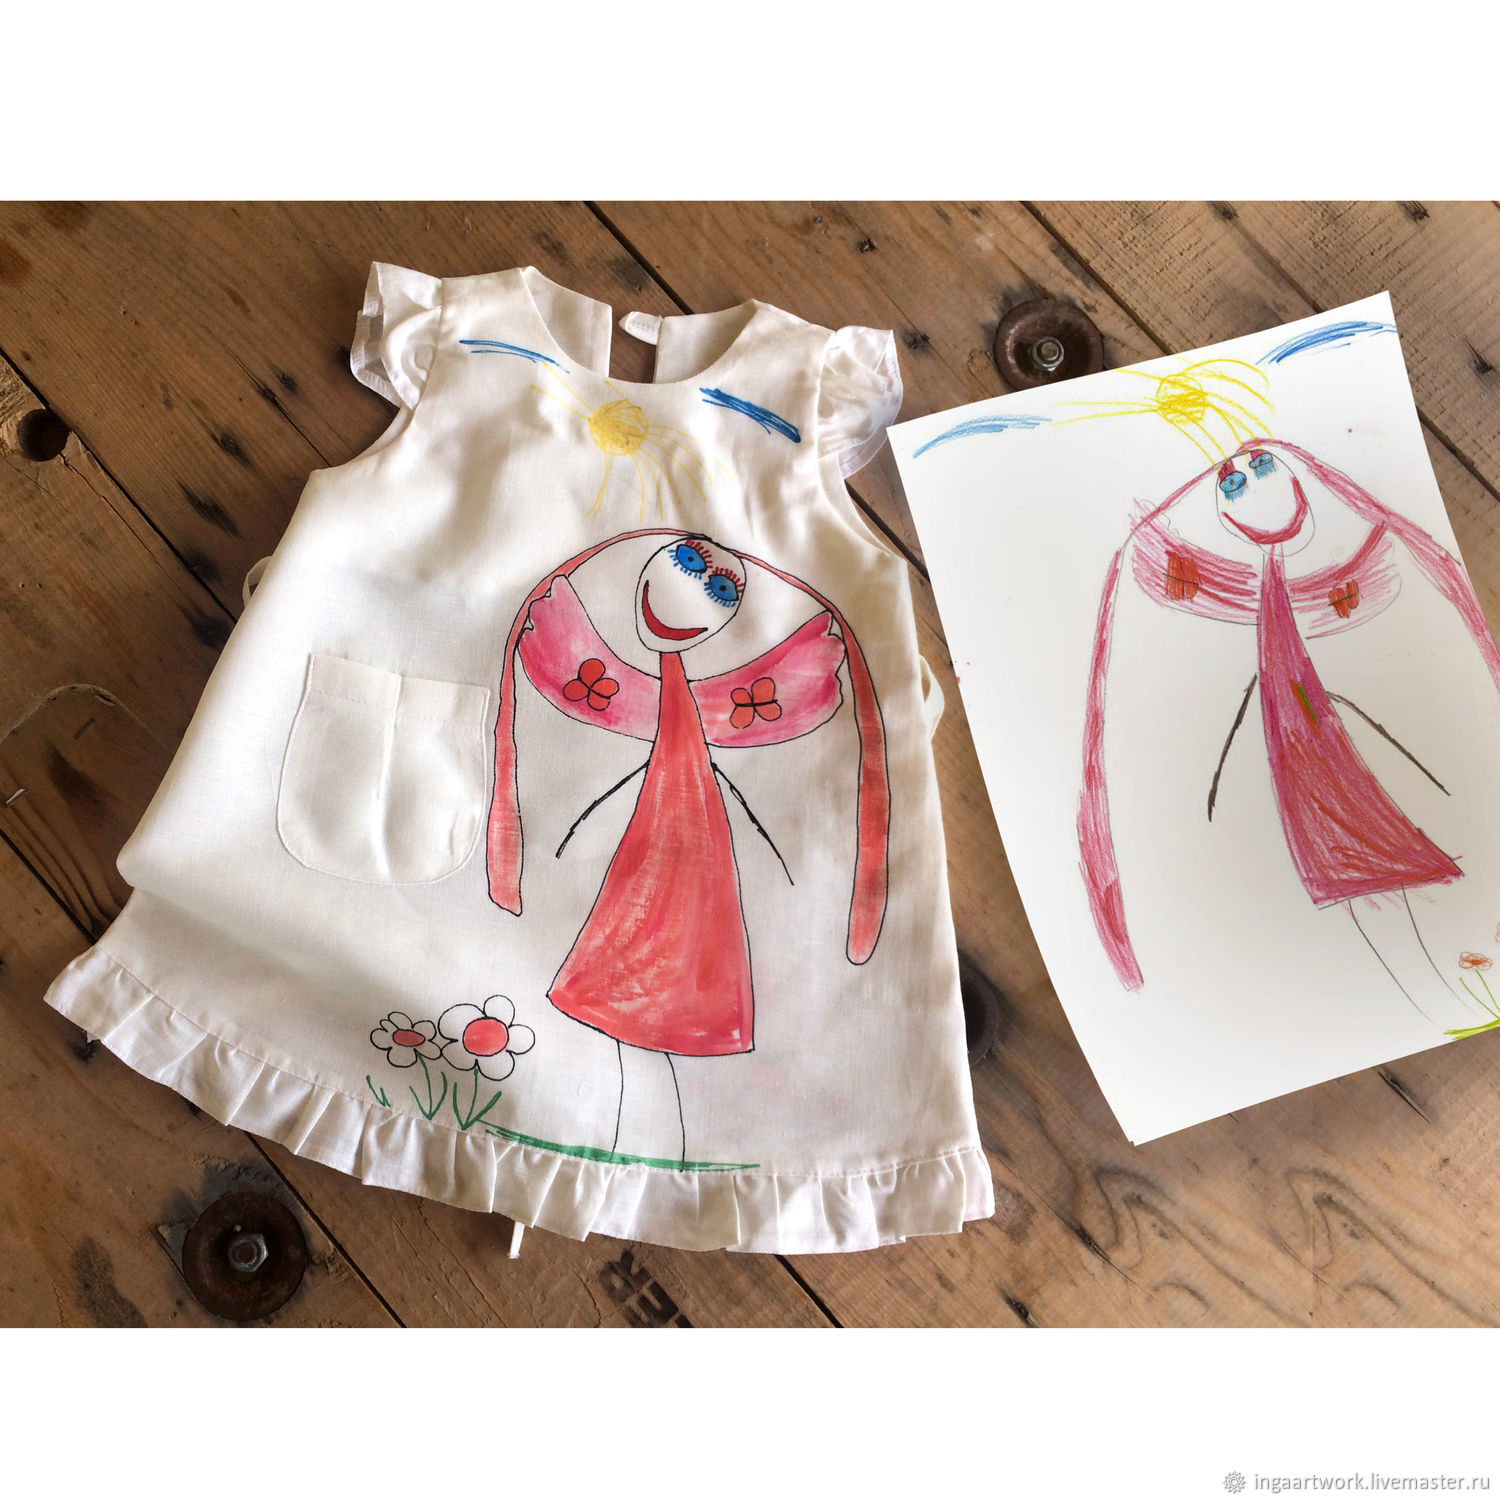 06a0ab1019d9a Personalized white linen kids art dress, Baby girl christening or wedd –  shop online on Livemaster with shipping - FXPHTCOM | Trakai